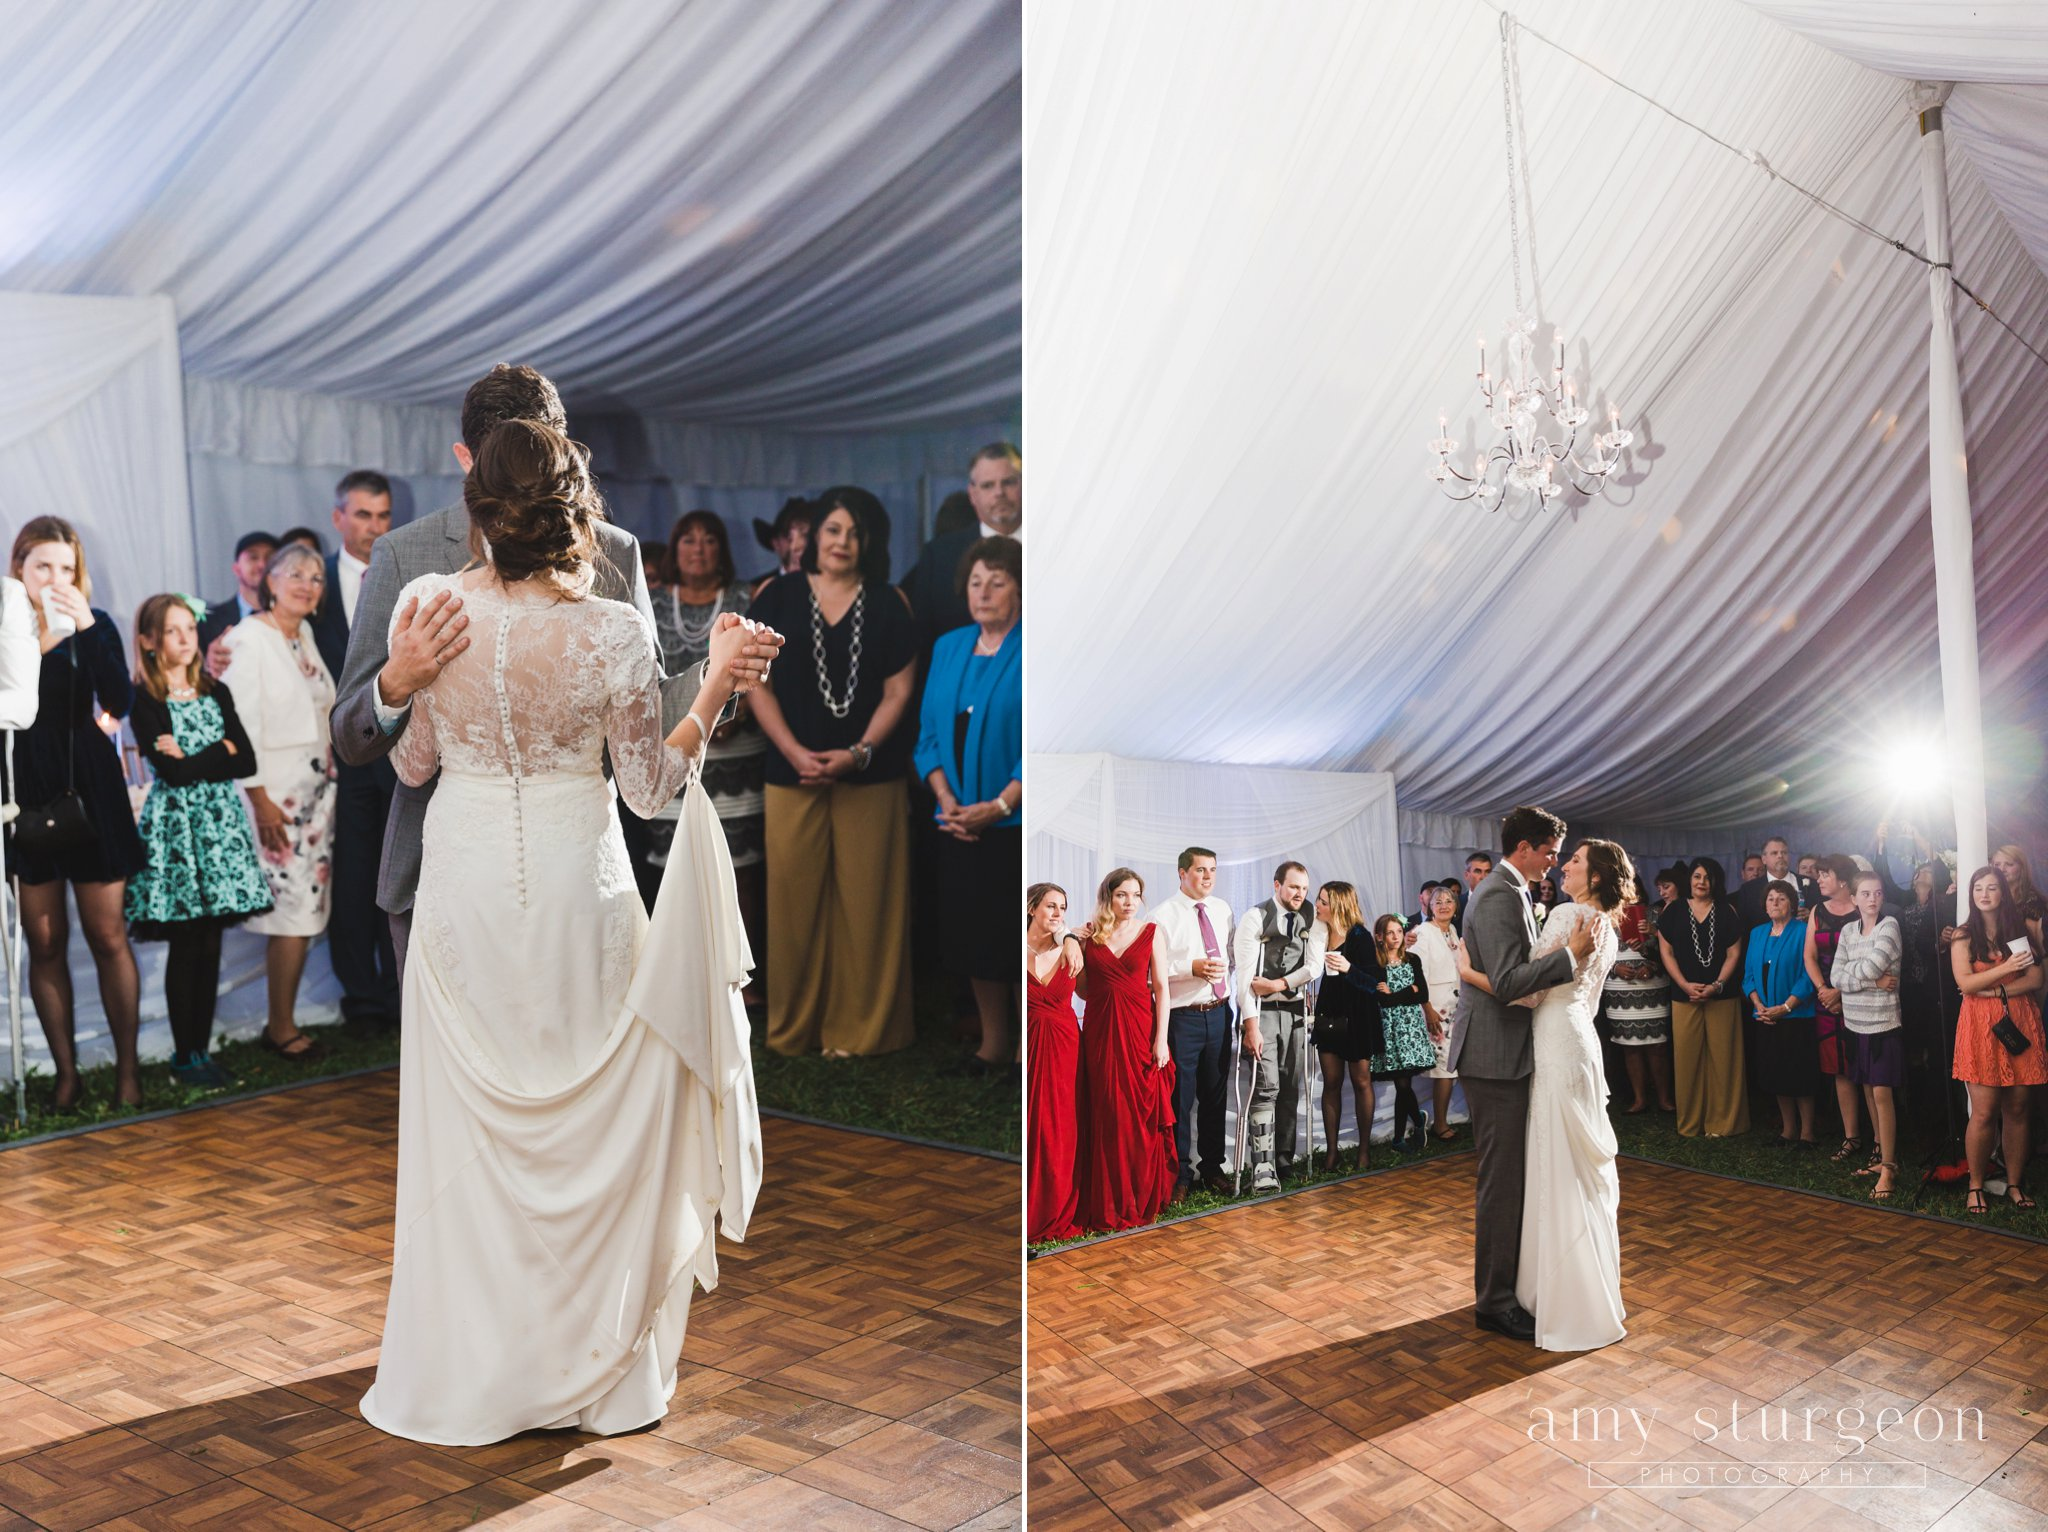 The bride and groom embrace for their first dance while surrounded by friends and family at the alpaca farm wedding